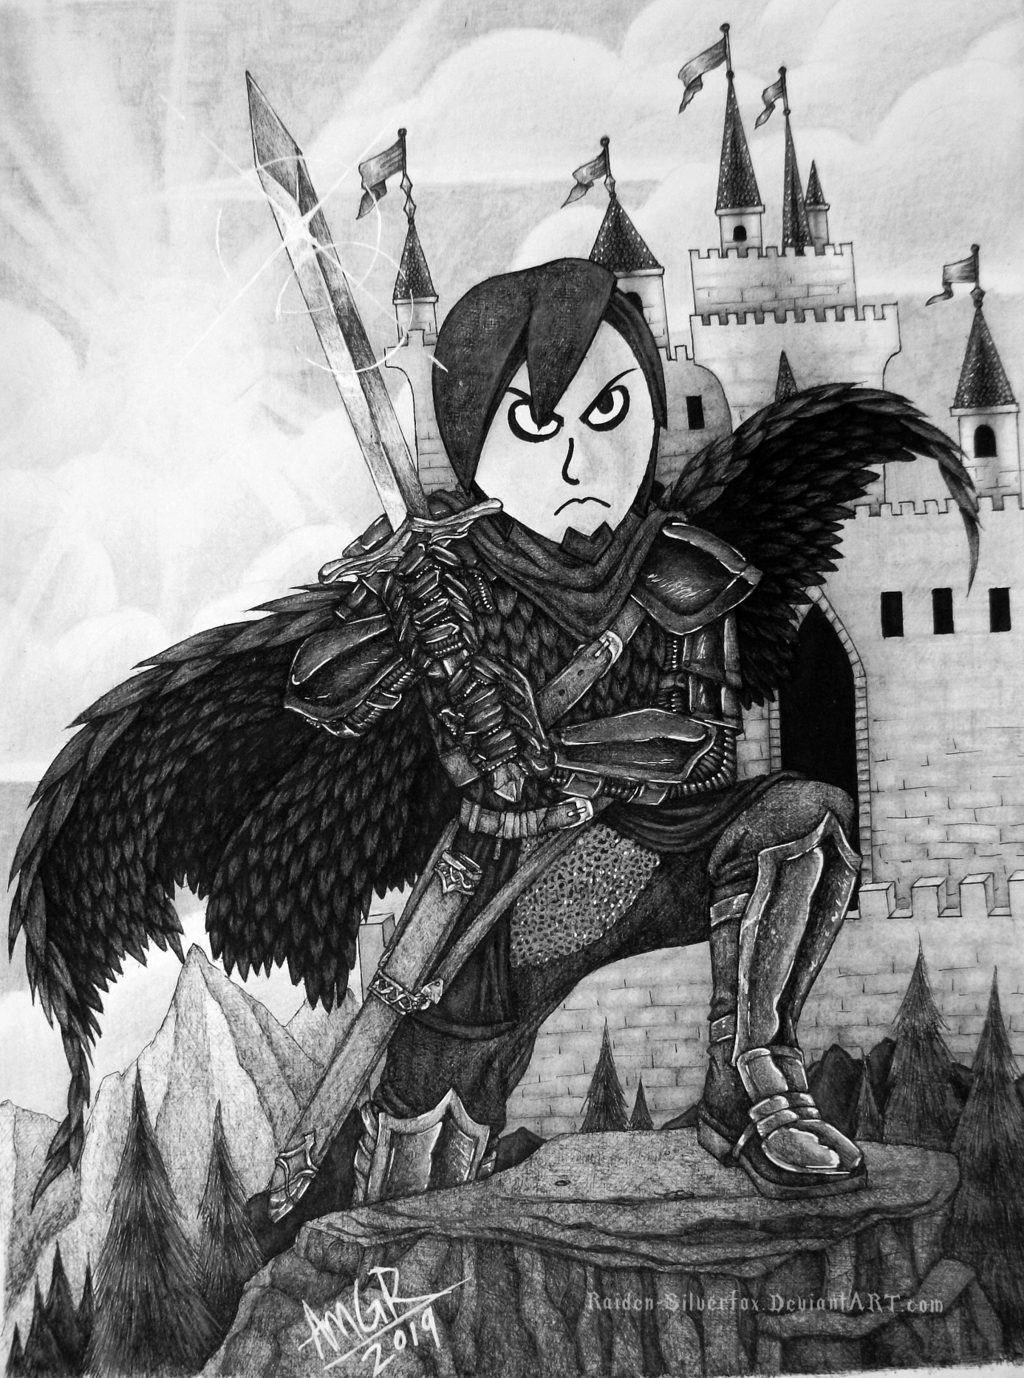 Most recent image: Miitopia - Raven the Warrior